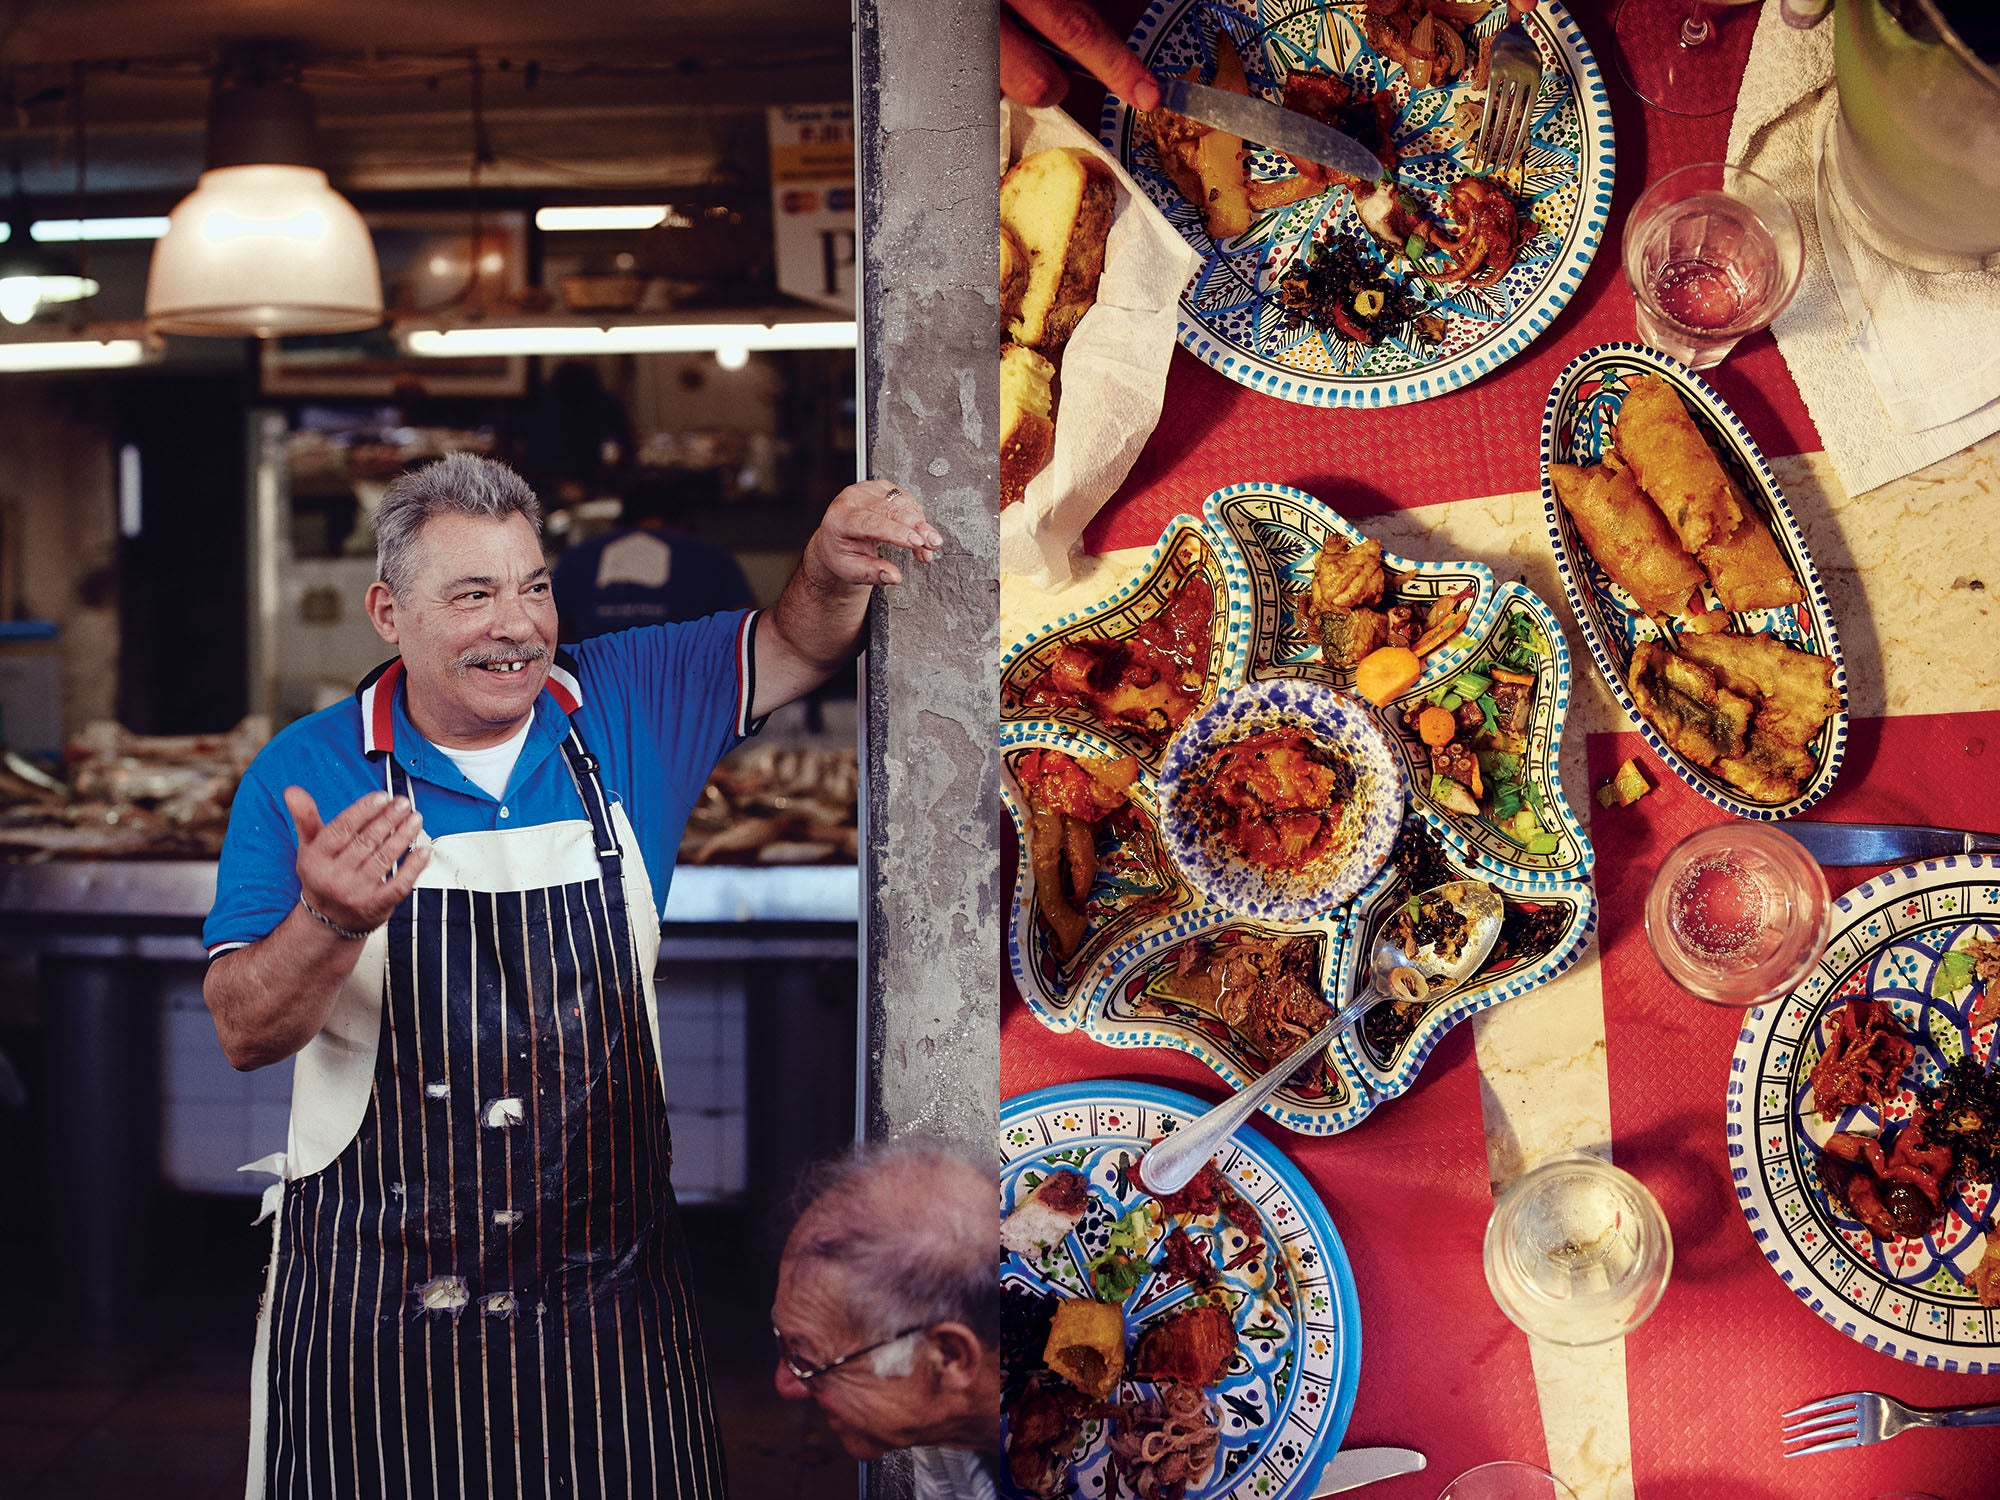 Eating the Arab Roots of Sicilian Cuisine